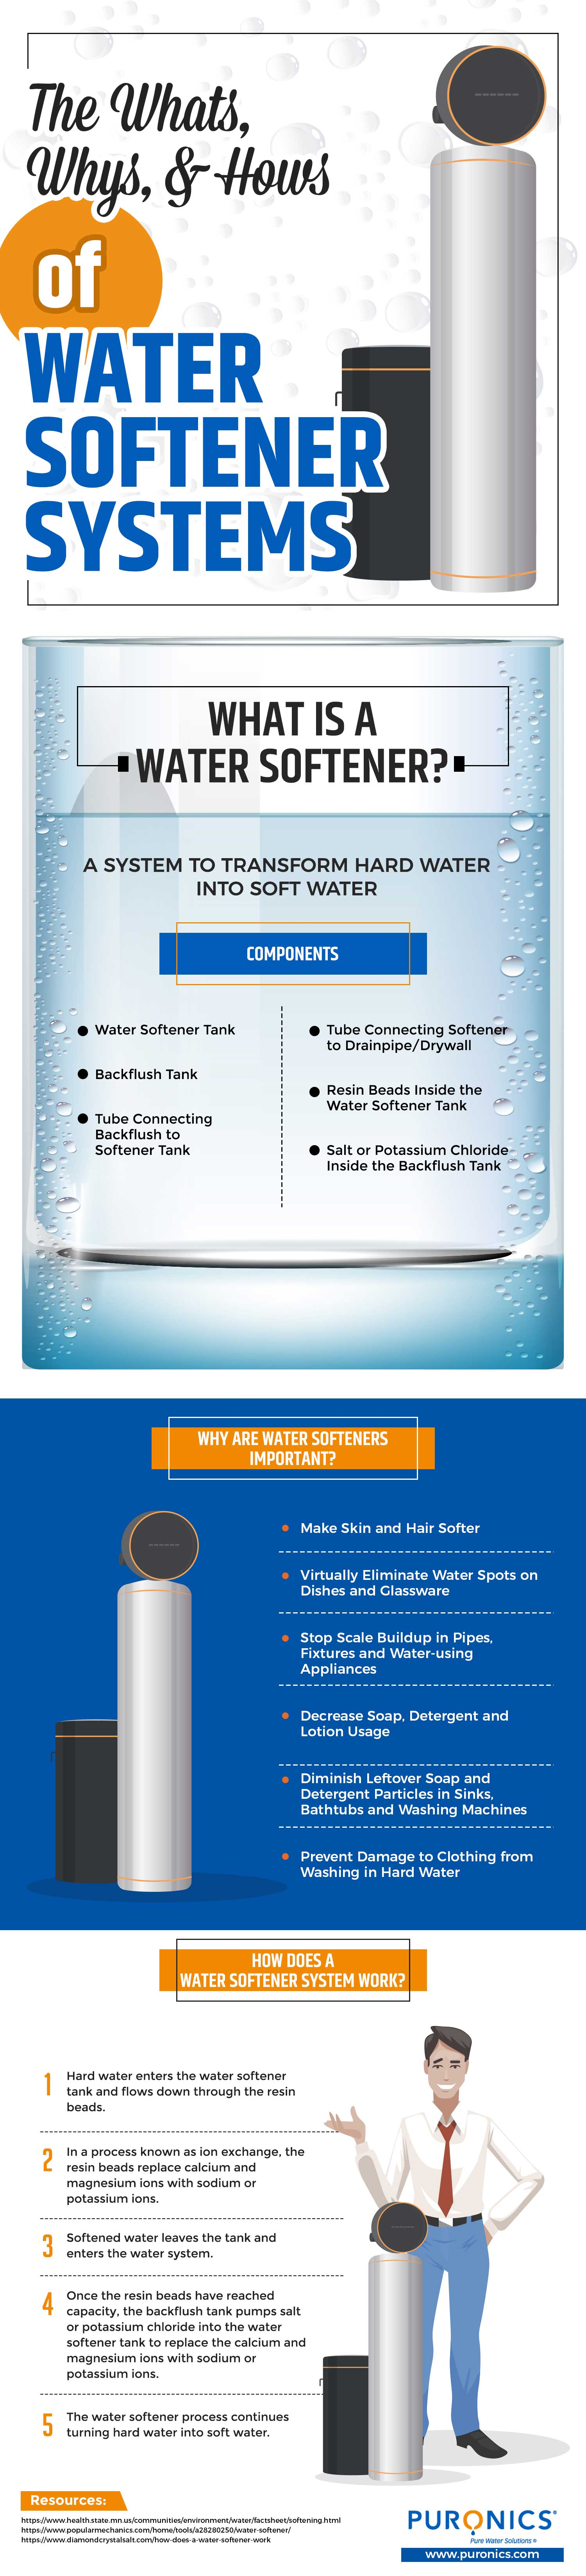 The Whats, Whys and Hows of Water Softener Systems